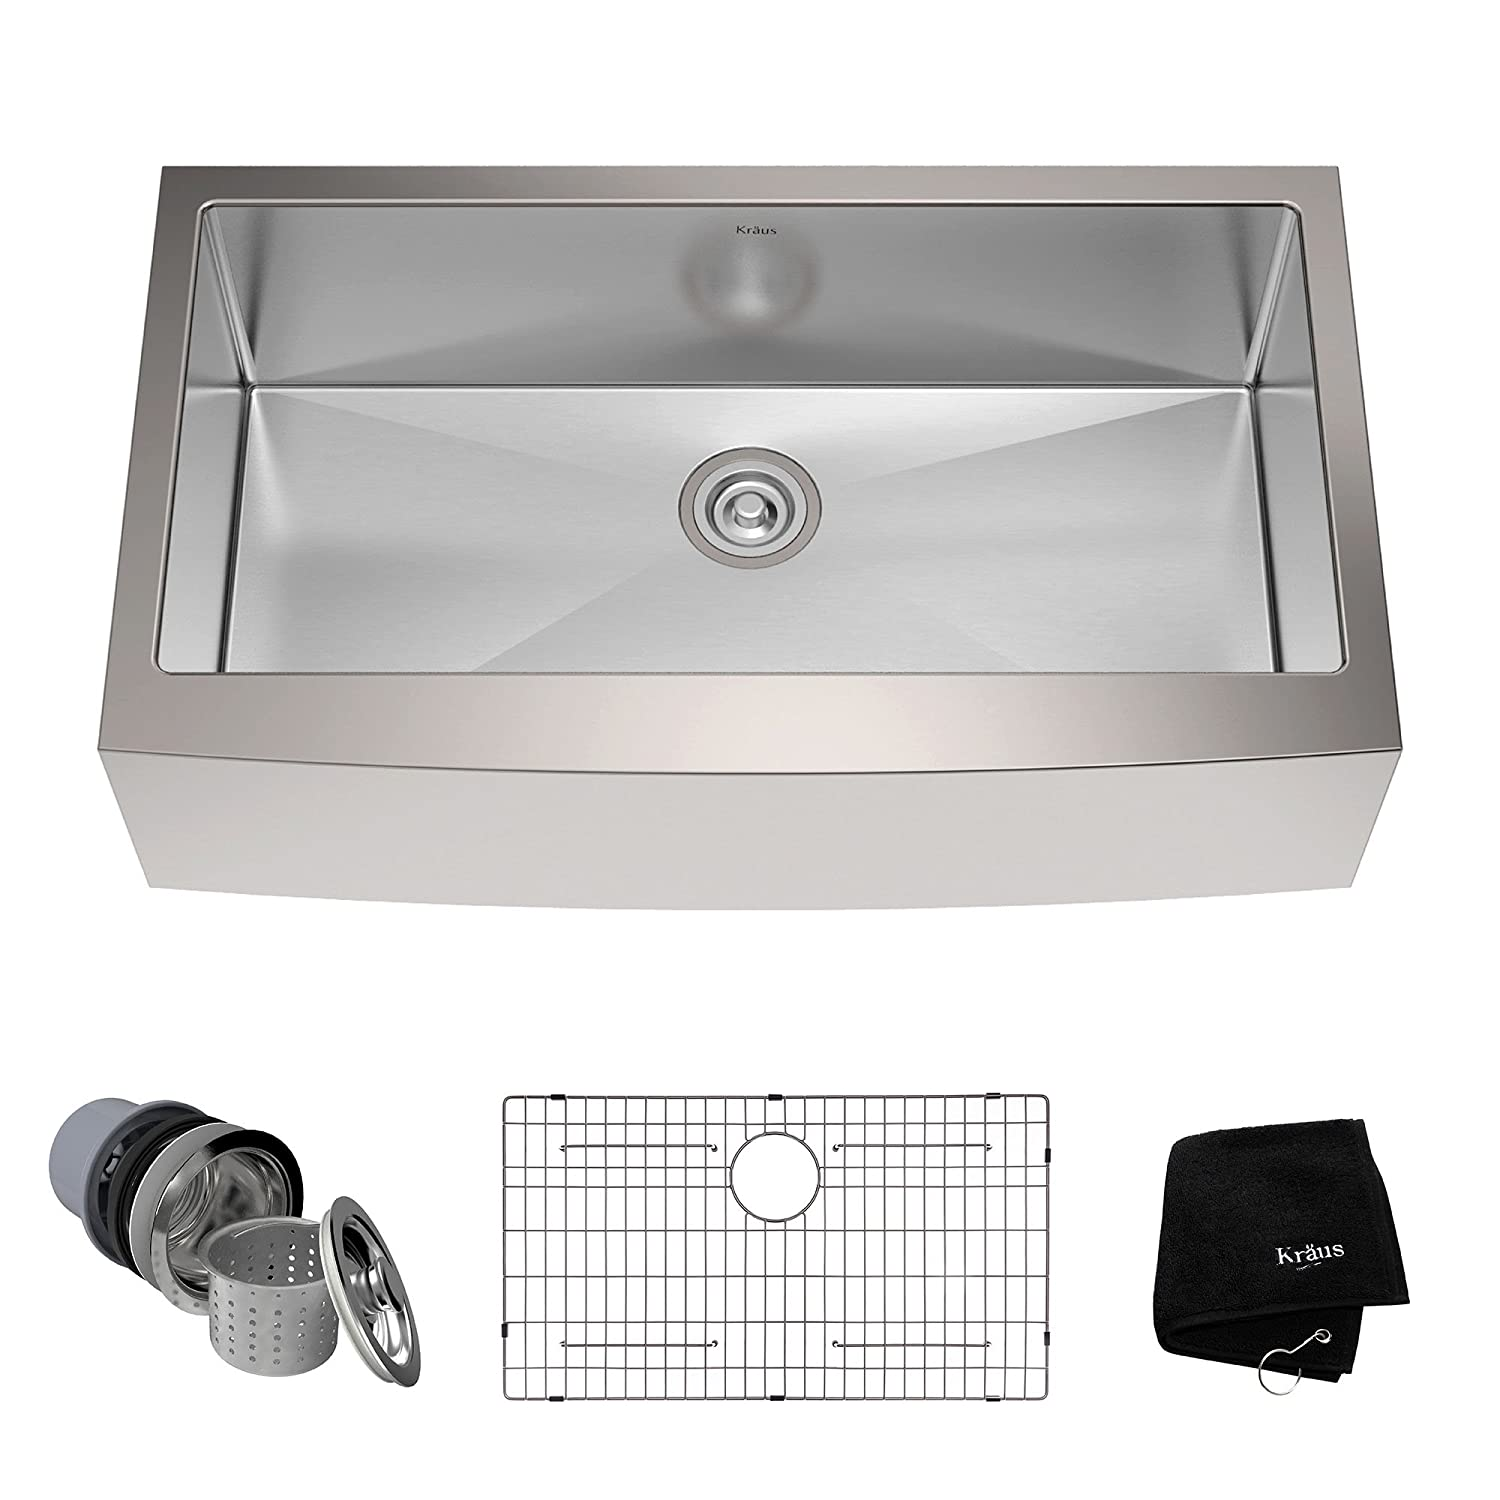 High Quality Kraus KHF200 36 36 Inch Farmhouse Apron Single Bowl 16 Gauge Stainless Steel  Kitchen Sink